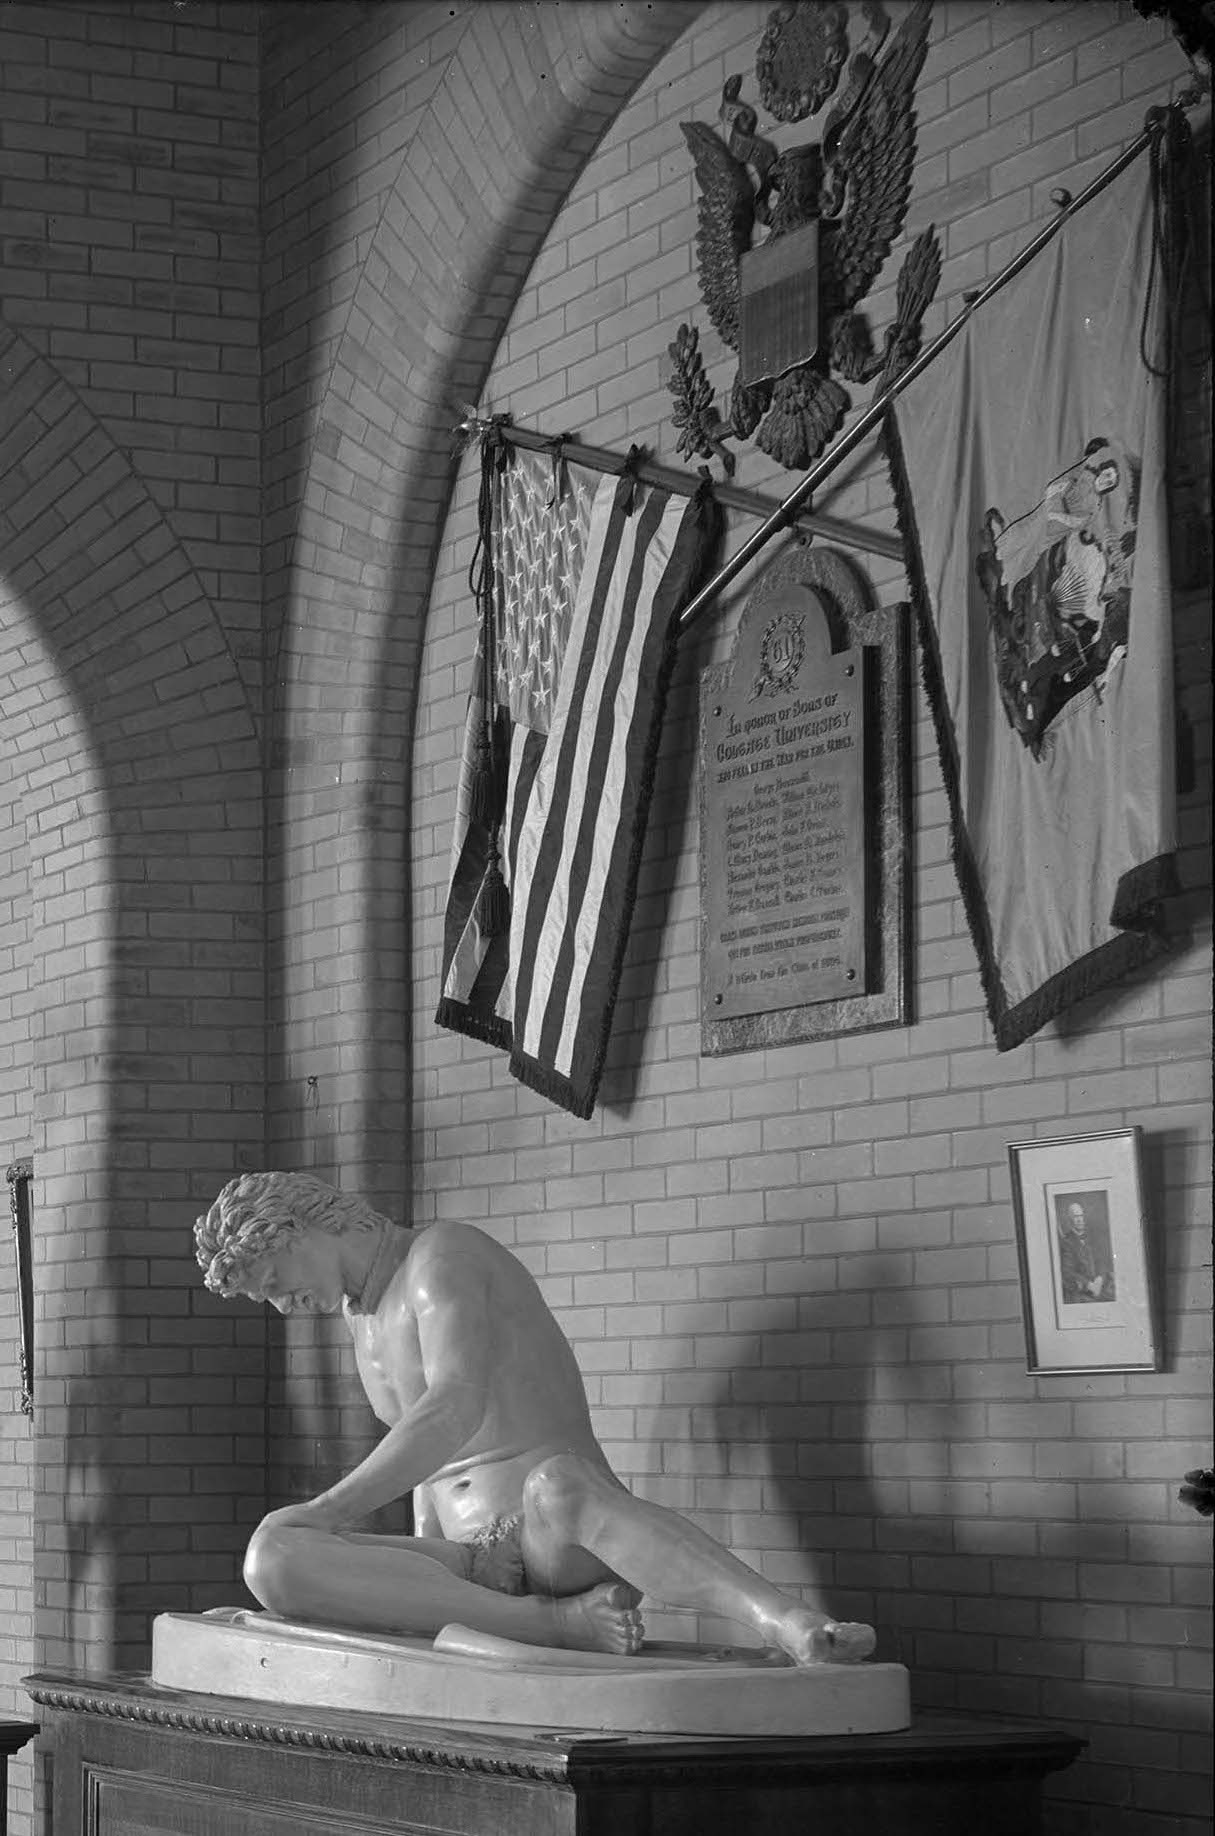 <p>Civil War Memorial, 1904.</p><p>Photo by Edward H. Stone.</p><p>Edward H. Stone Collection.</p><p>Special Collections and University Archives,</p><p>Colgate University Libraries.</p>